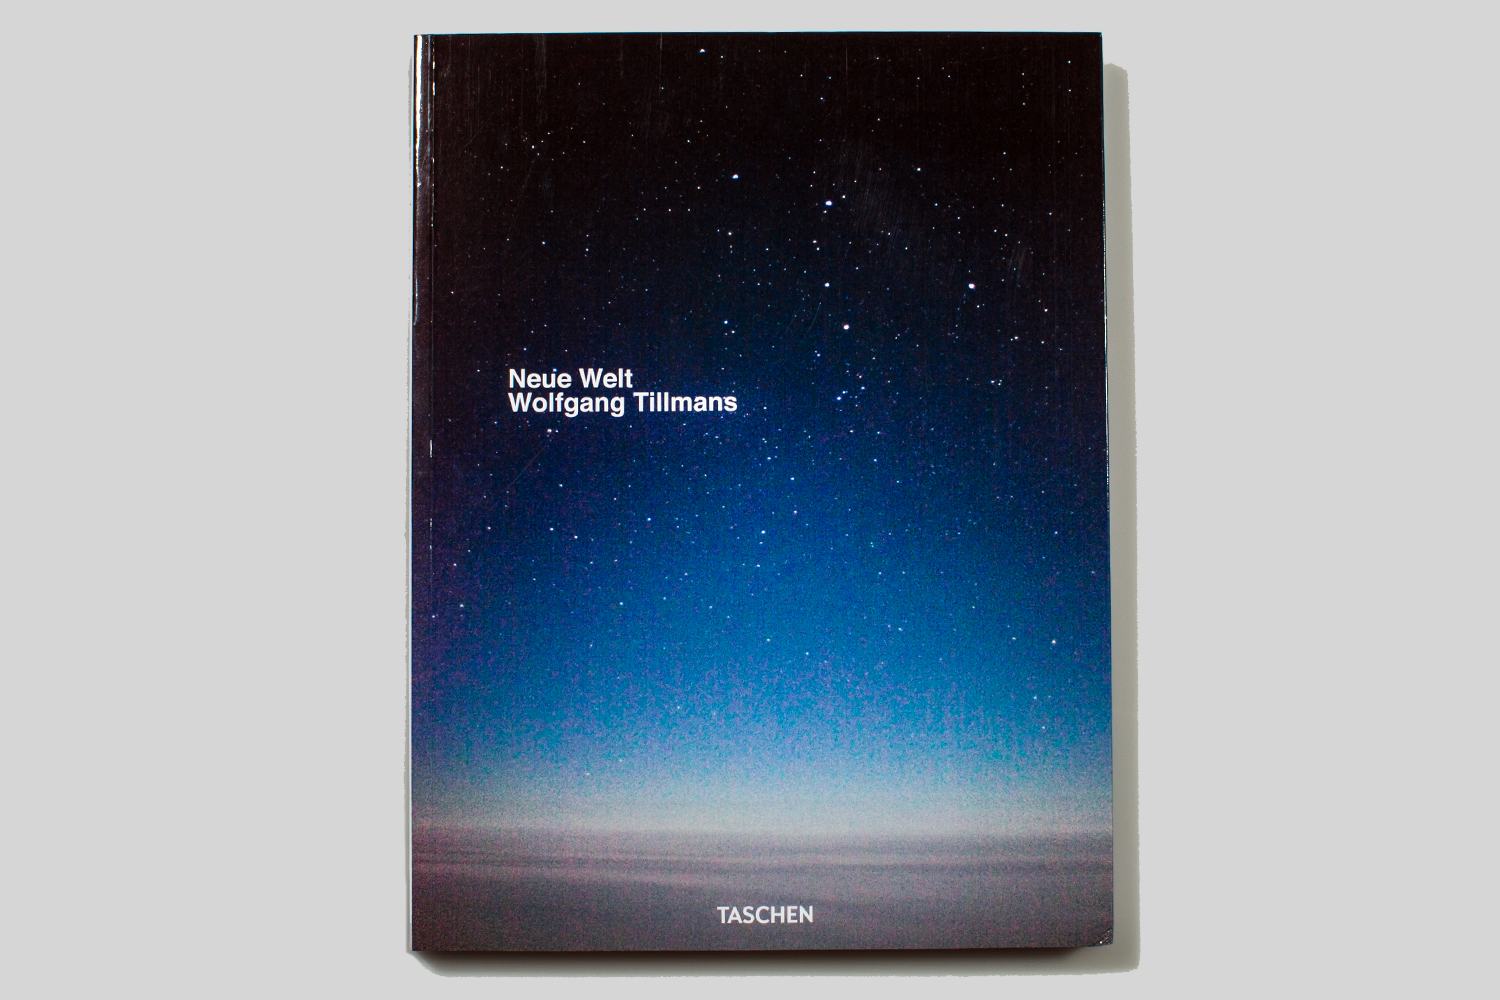 Neue Welt by Wolfgang Tillmans, selected by Michael Mack, publisher of MACK